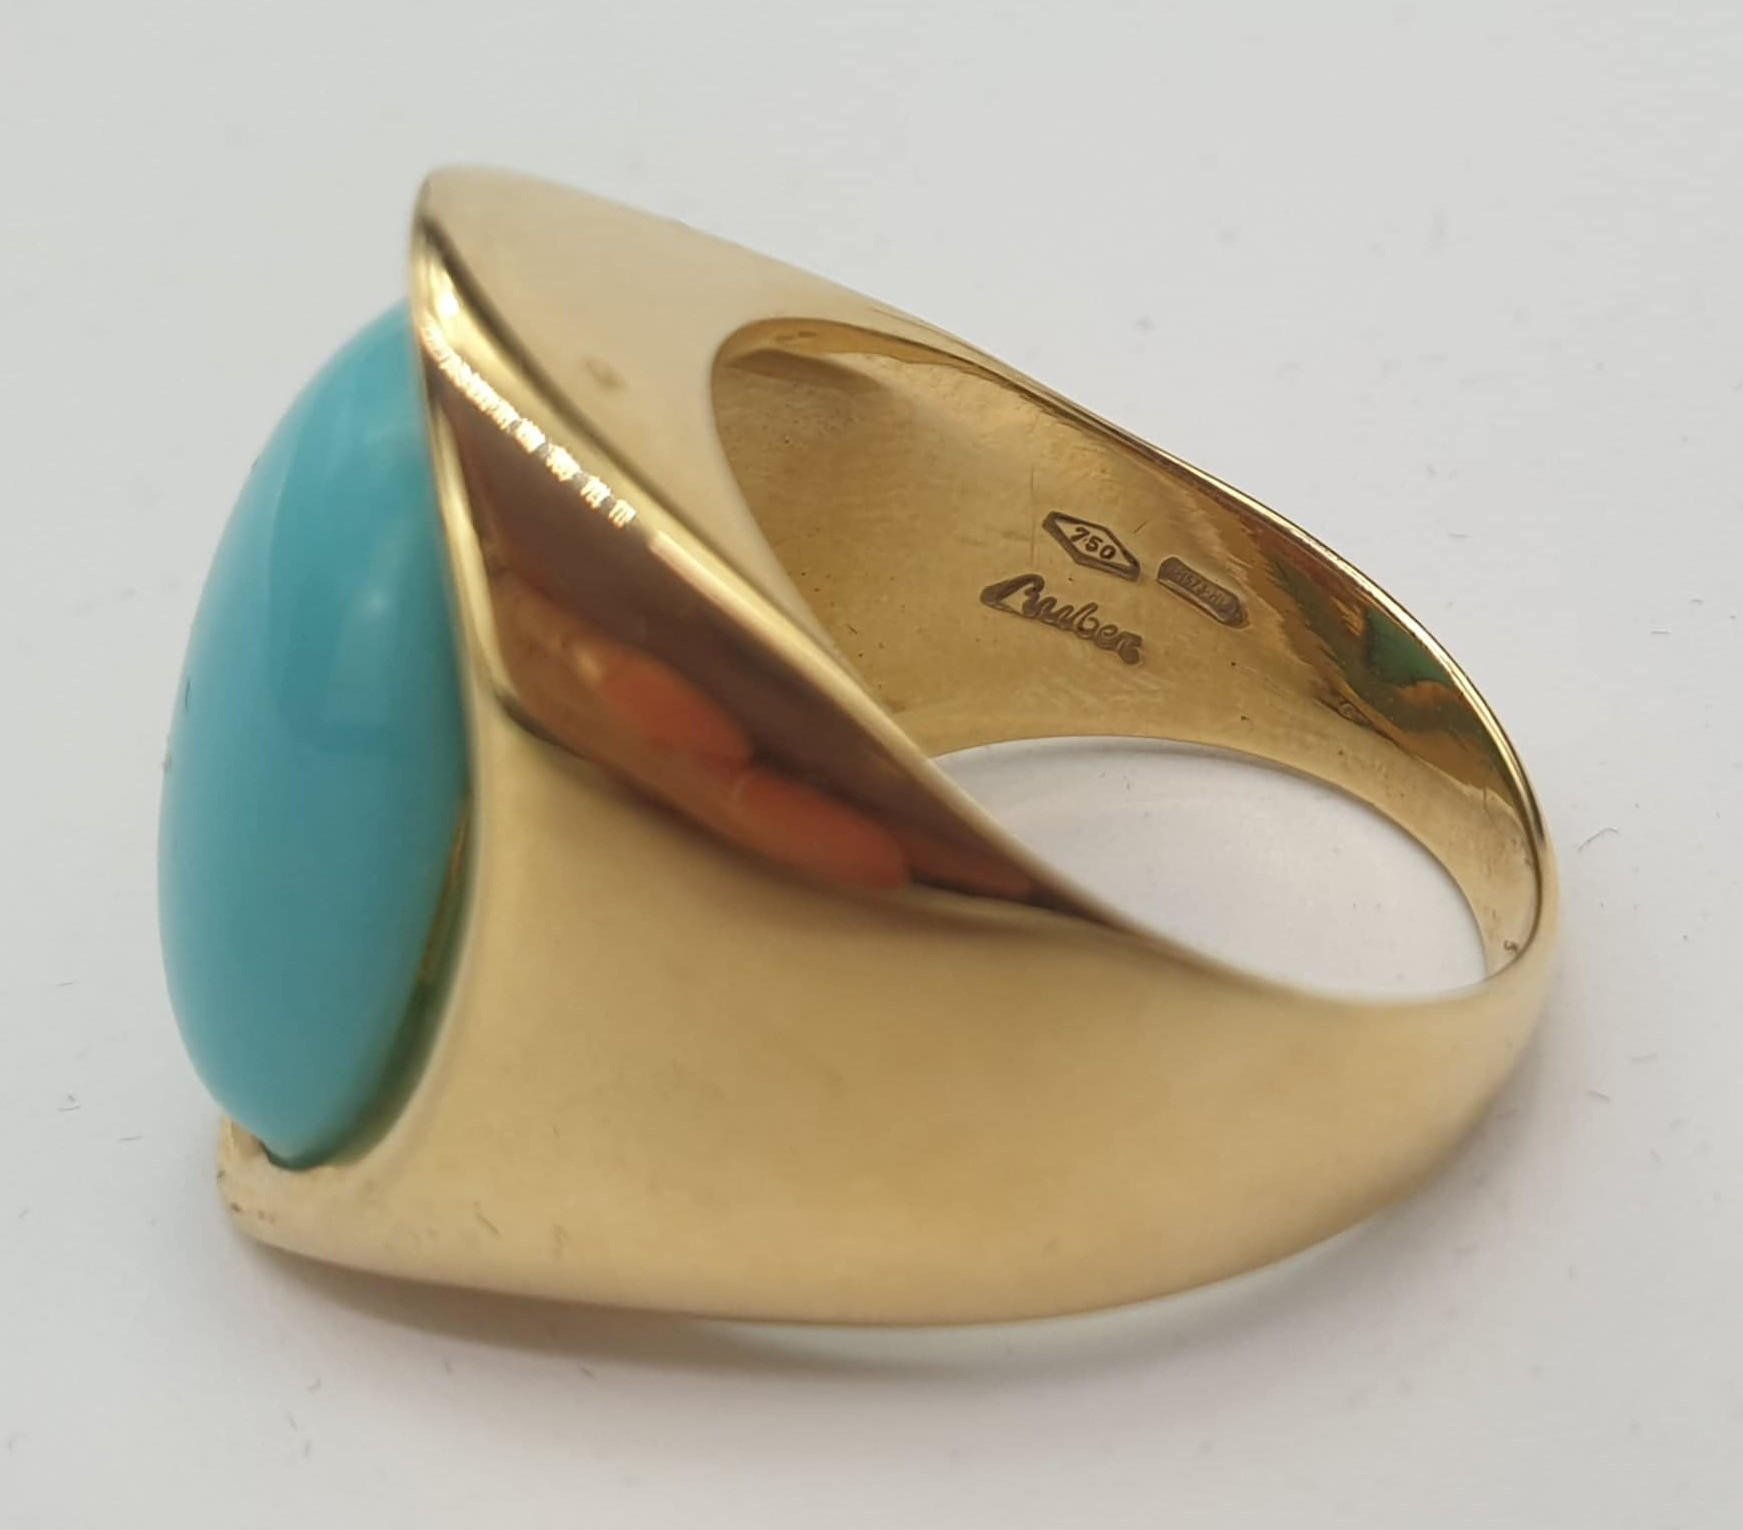 Ring & Ear Clips | Turquoise | 750 (18k) Gold - Image 4 of 6